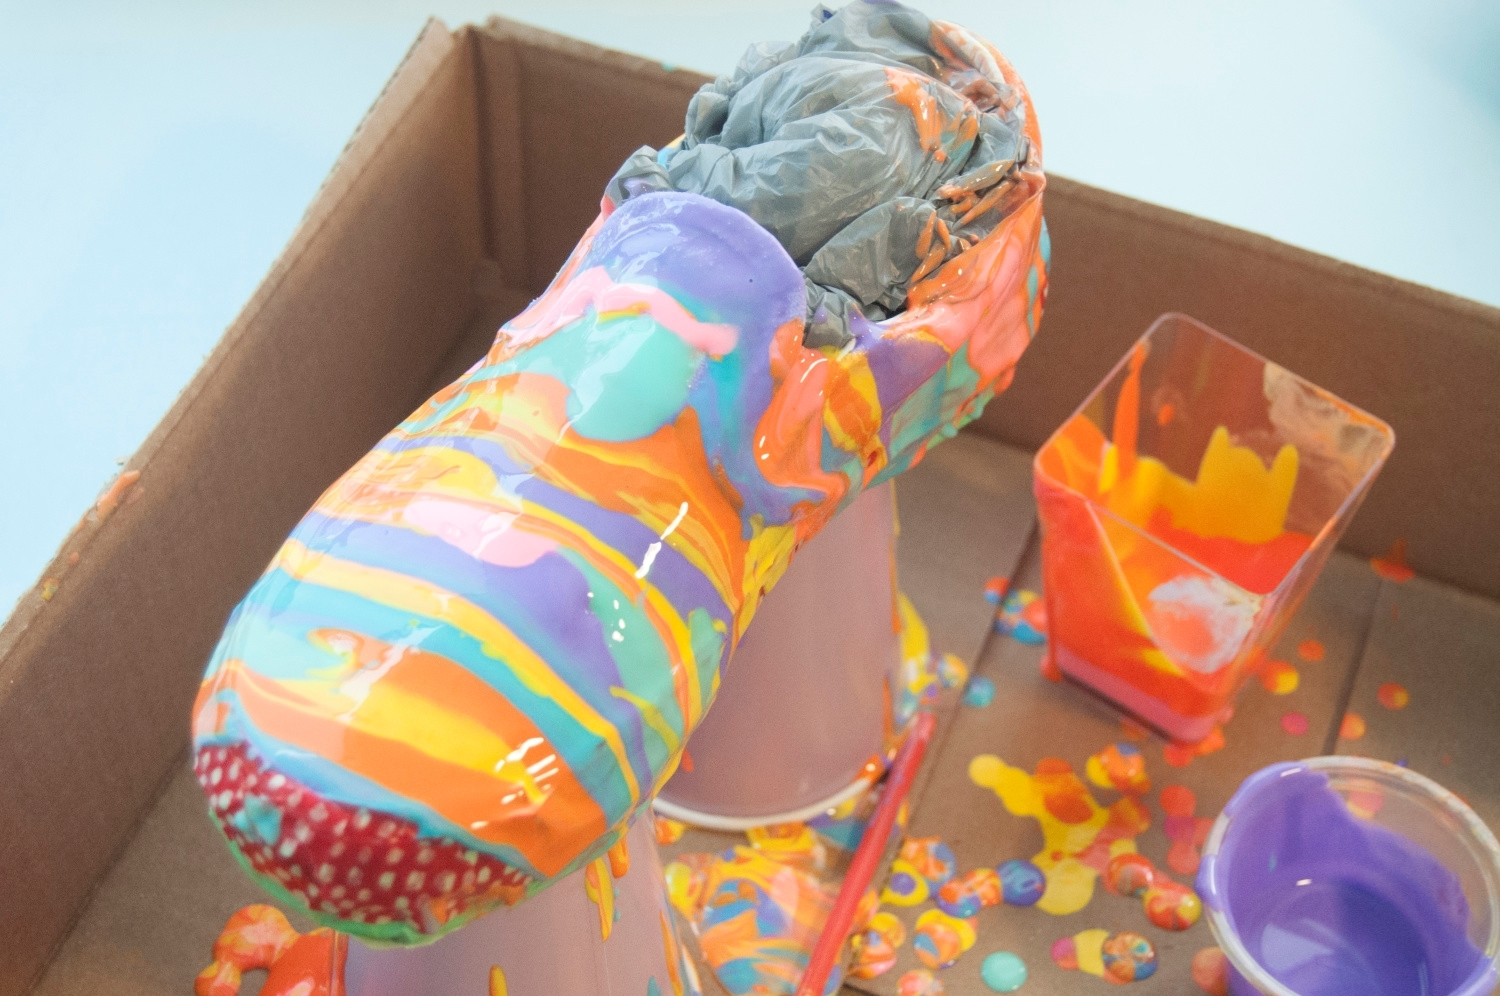 Keep alternating pouring paints until shoes are covered